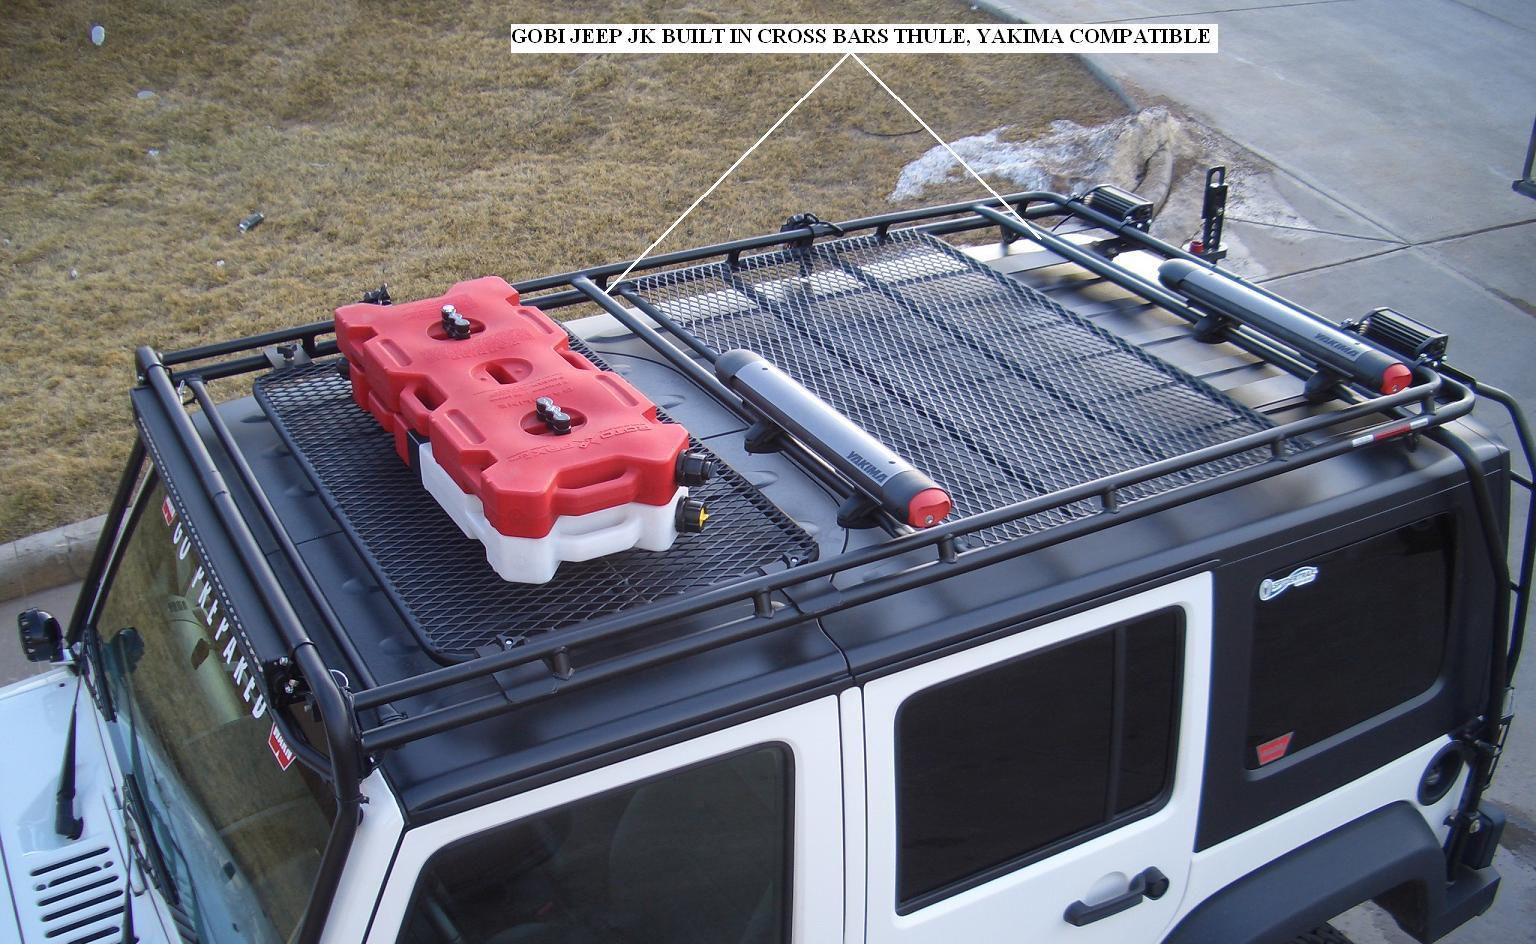 jeep wrangler round led lights gobi rack gobi jeep jk built in cross bars yakima thule compatible with attached  [ 1536 x 944 Pixel ]